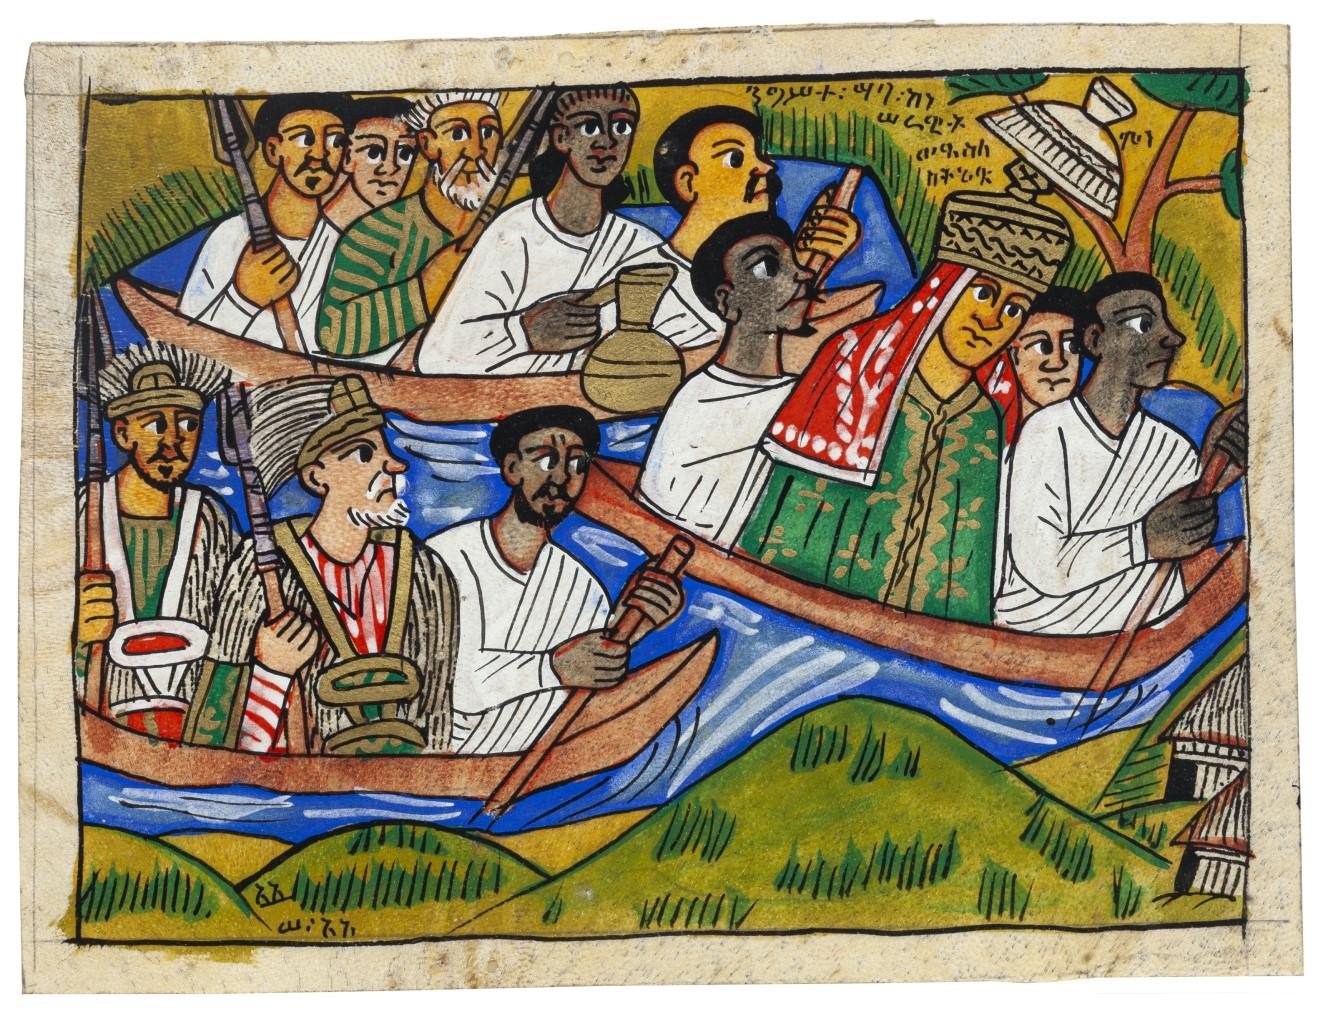 Procession - Original Mixed Media on Ivory-colored Cardboard - 20th Century